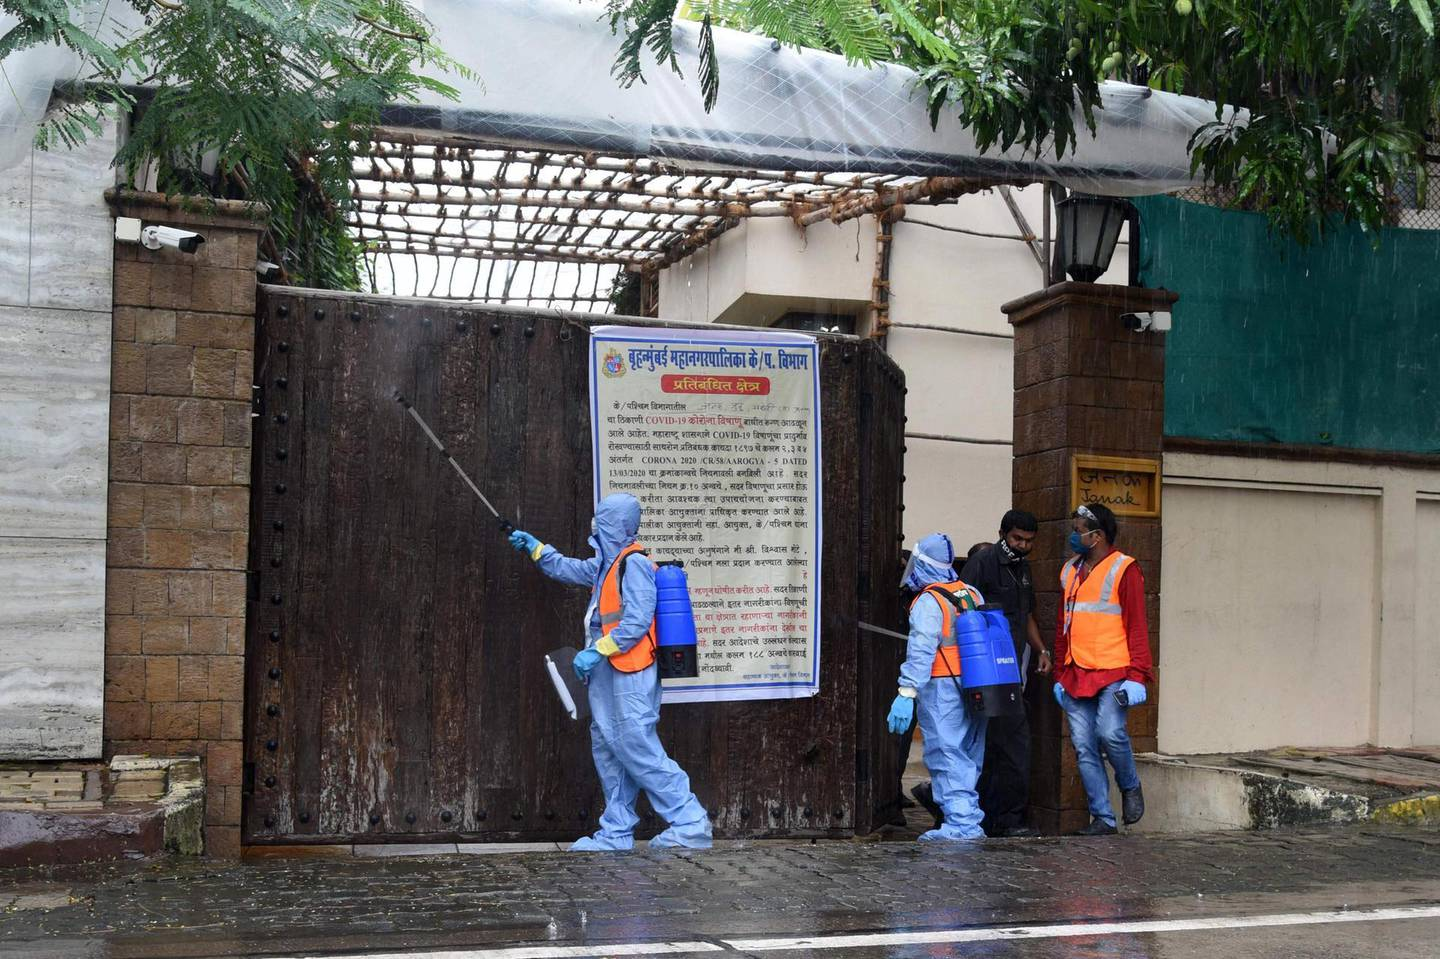 Civic authority workers spray sanitiser on the main door of the residence of Bollywood star Amitabh Bachchan as he tested positive for COVID-19 in Mumbai on July 12, 2020. Bollywood megastar Amitabh Bachchan, 77, tested positive for COVID-19 on July 11 and was admitted to hospital in Mumbai, with his actor son Abhishek -- who also announced he had the virus -- saying both cases were mild. / AFP / Sujit Jaiswal